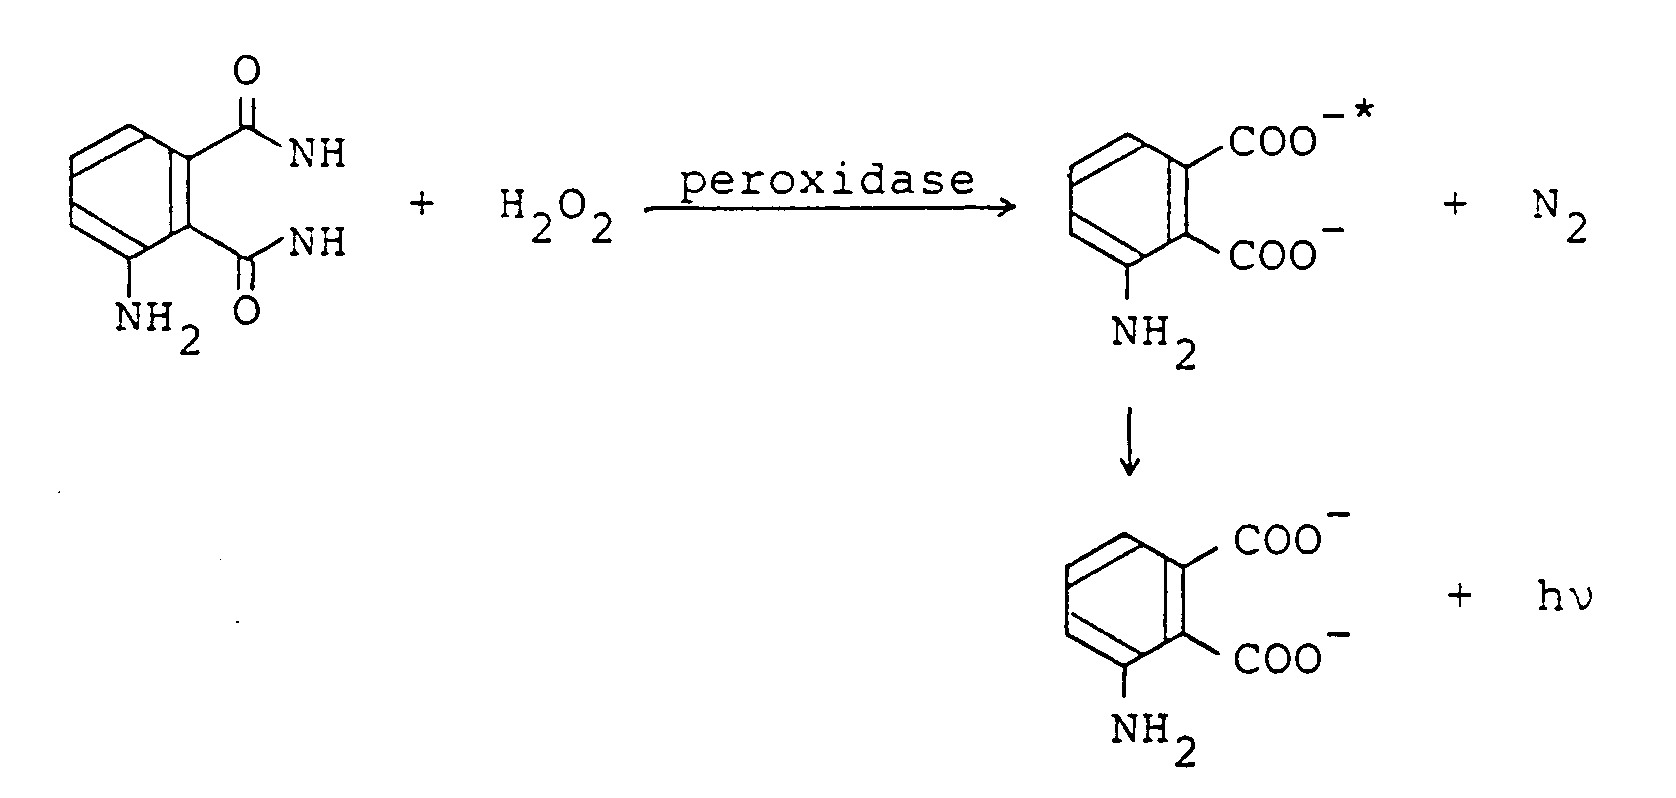 the reaction between hydrogen peroxide The redox half-reaction for hydrogen oxidation is relatively simple and is shown   bias for the production of water over hydrogen peroxide when h2 and o2 are.